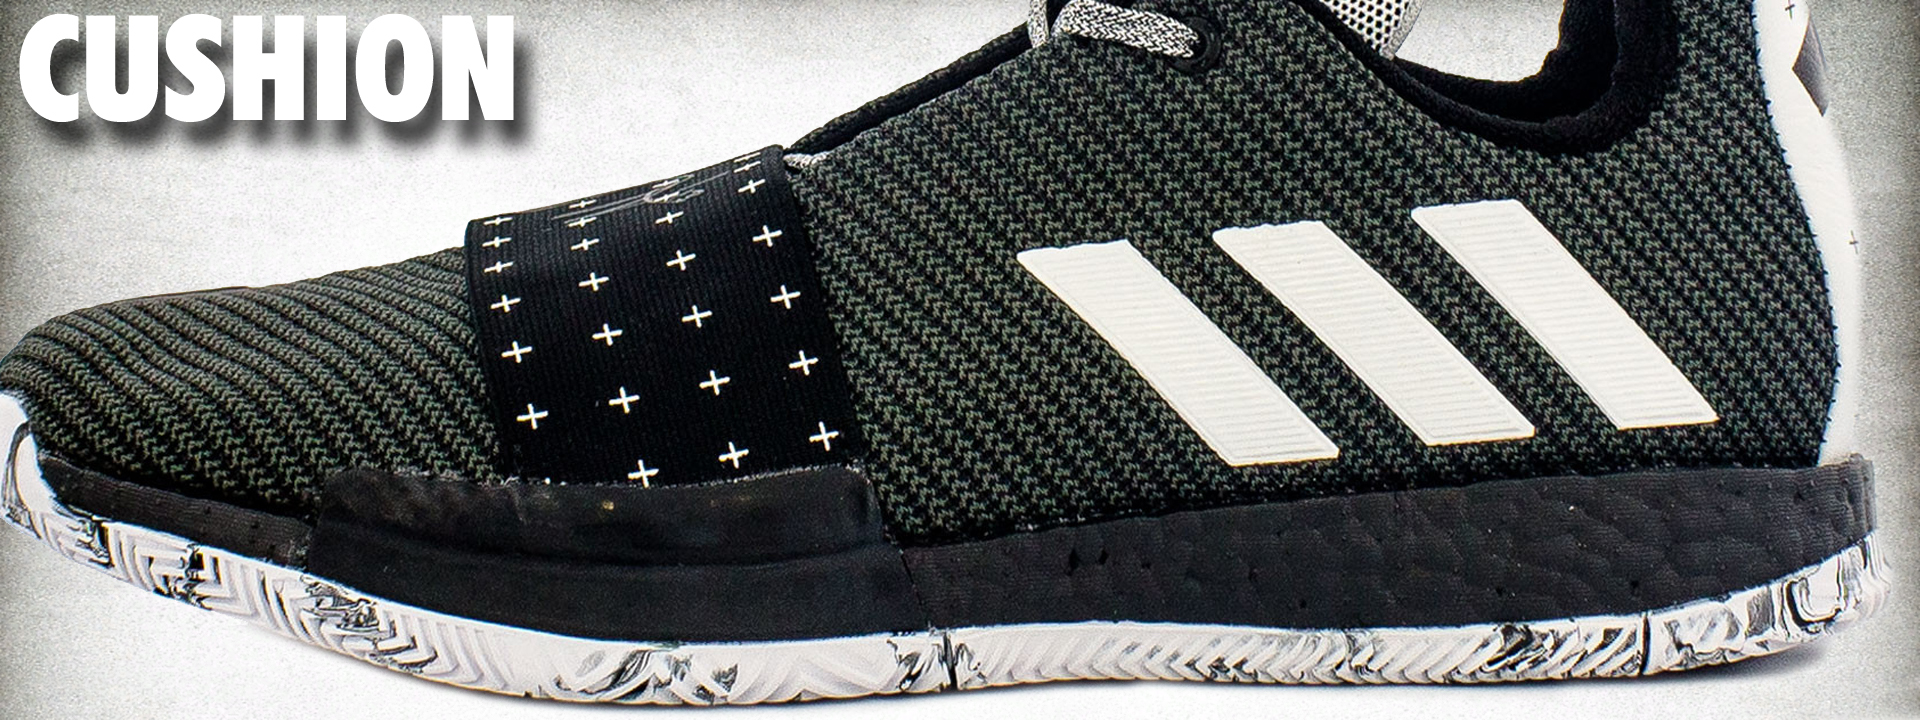 3dd628827 adidas-Harden-Vol-3-Performance-Review-Cushion - WearTesters